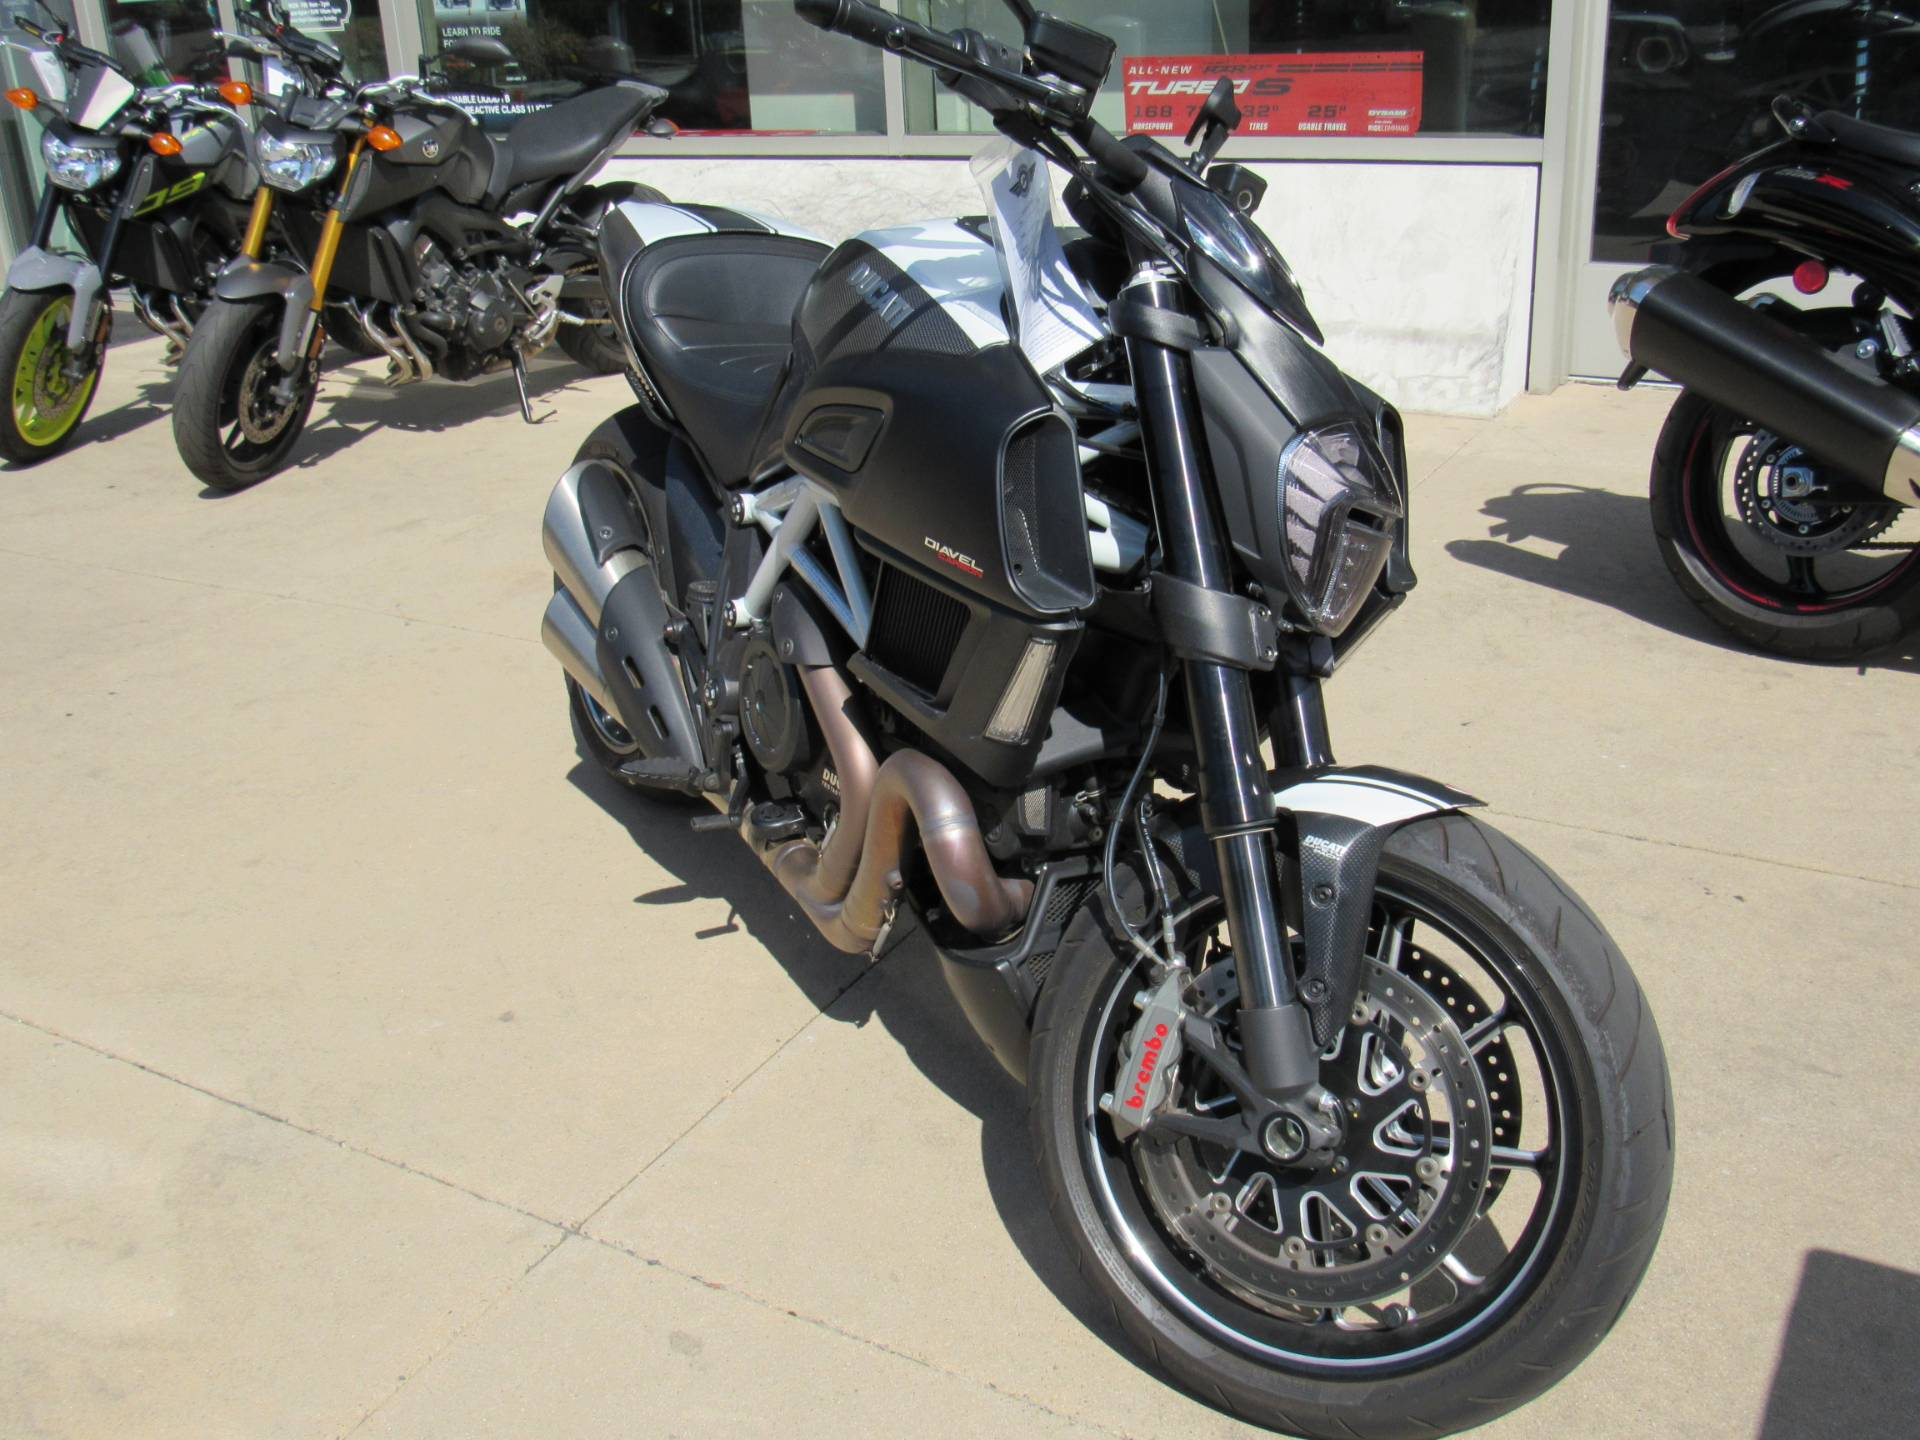 Used 2015 Ducati Diavel Carbon Motorcycles In Irvine Ca Stock